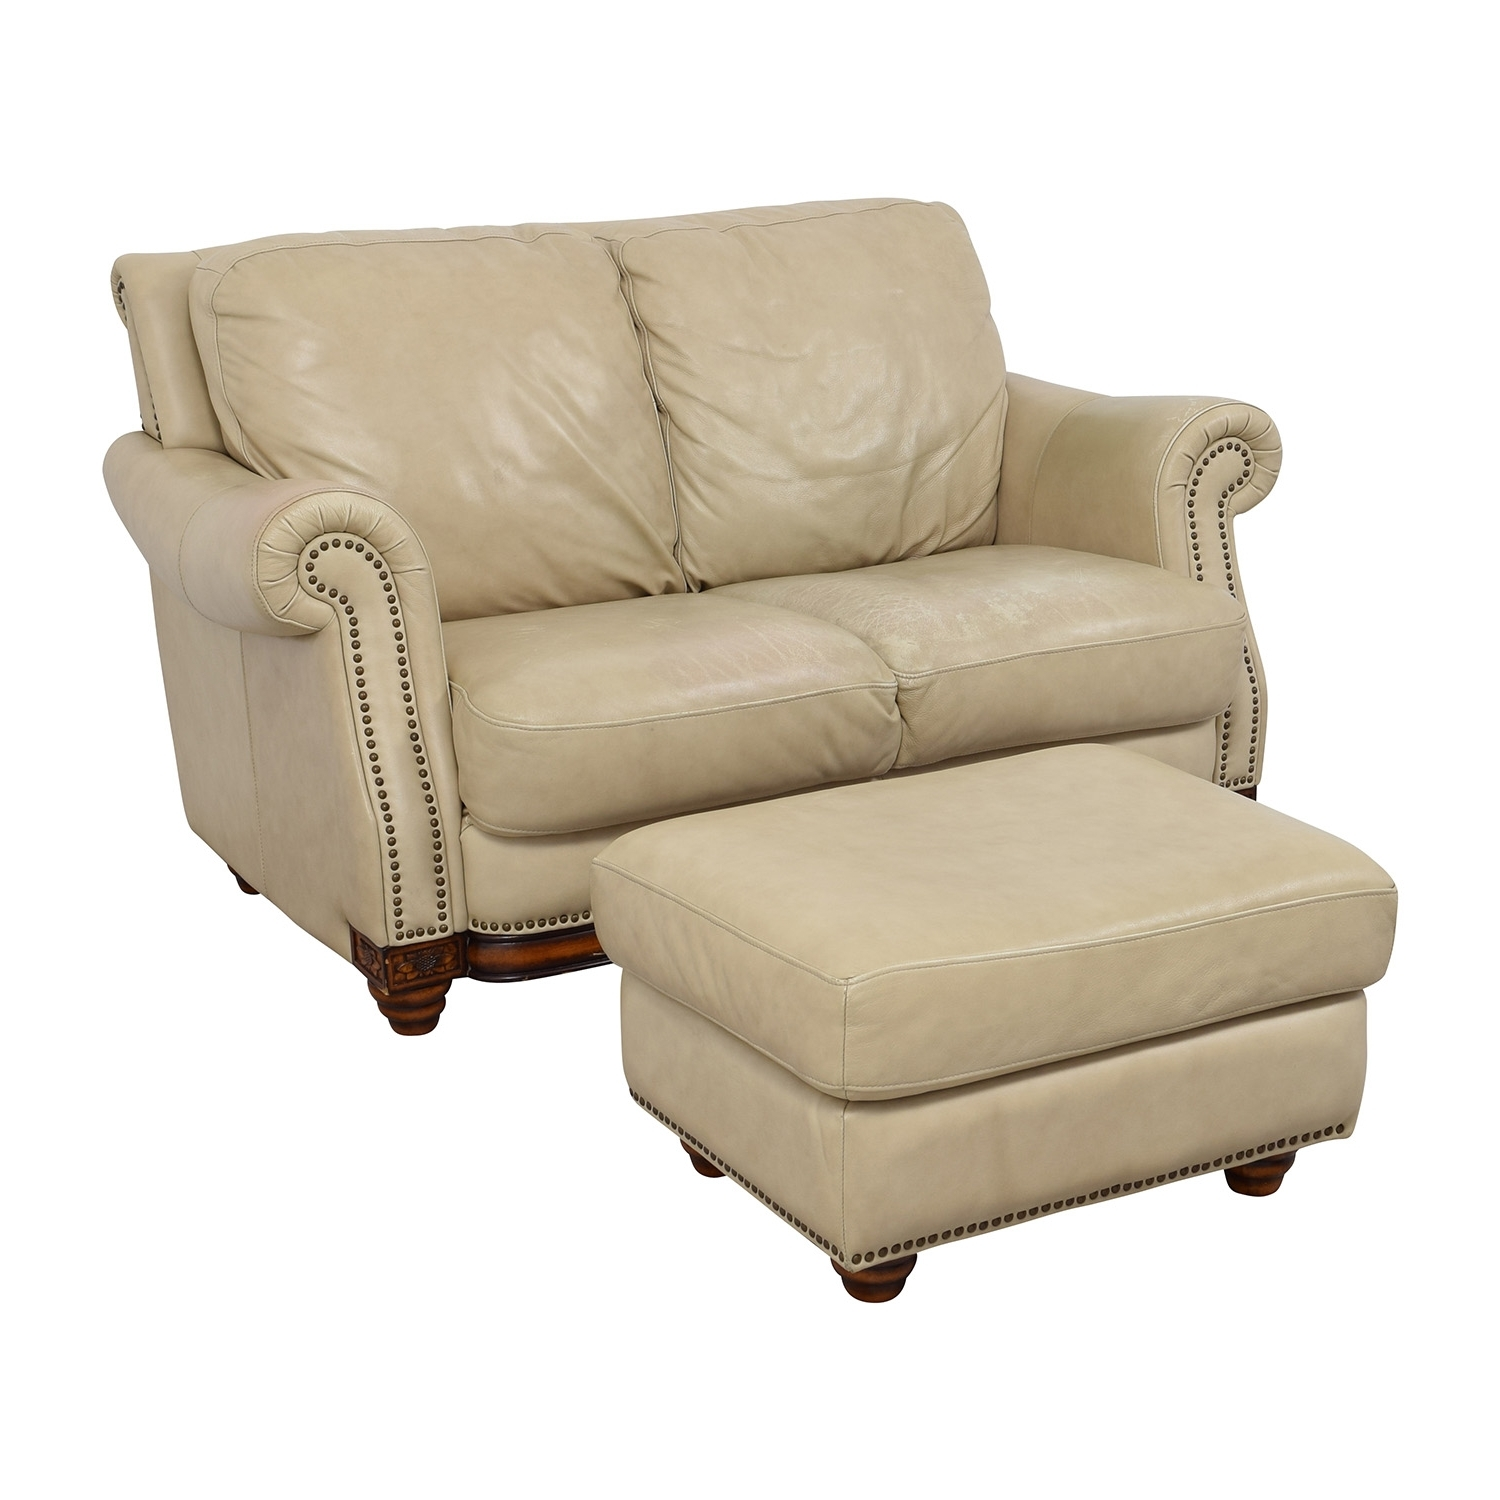 [%74% Off – Raymour & Flanigan Raymour & Flanigan Studded Tan With Regard To 2018 Loveseats With Ottoman|Loveseats With Ottoman Pertaining To Most Recently Released 74% Off – Raymour & Flanigan Raymour & Flanigan Studded Tan|Fashionable Loveseats With Ottoman In 74% Off – Raymour & Flanigan Raymour & Flanigan Studded Tan|Fashionable 74% Off – Raymour & Flanigan Raymour & Flanigan Studded Tan For Loveseats With Ottoman%] (View 8 of 15)